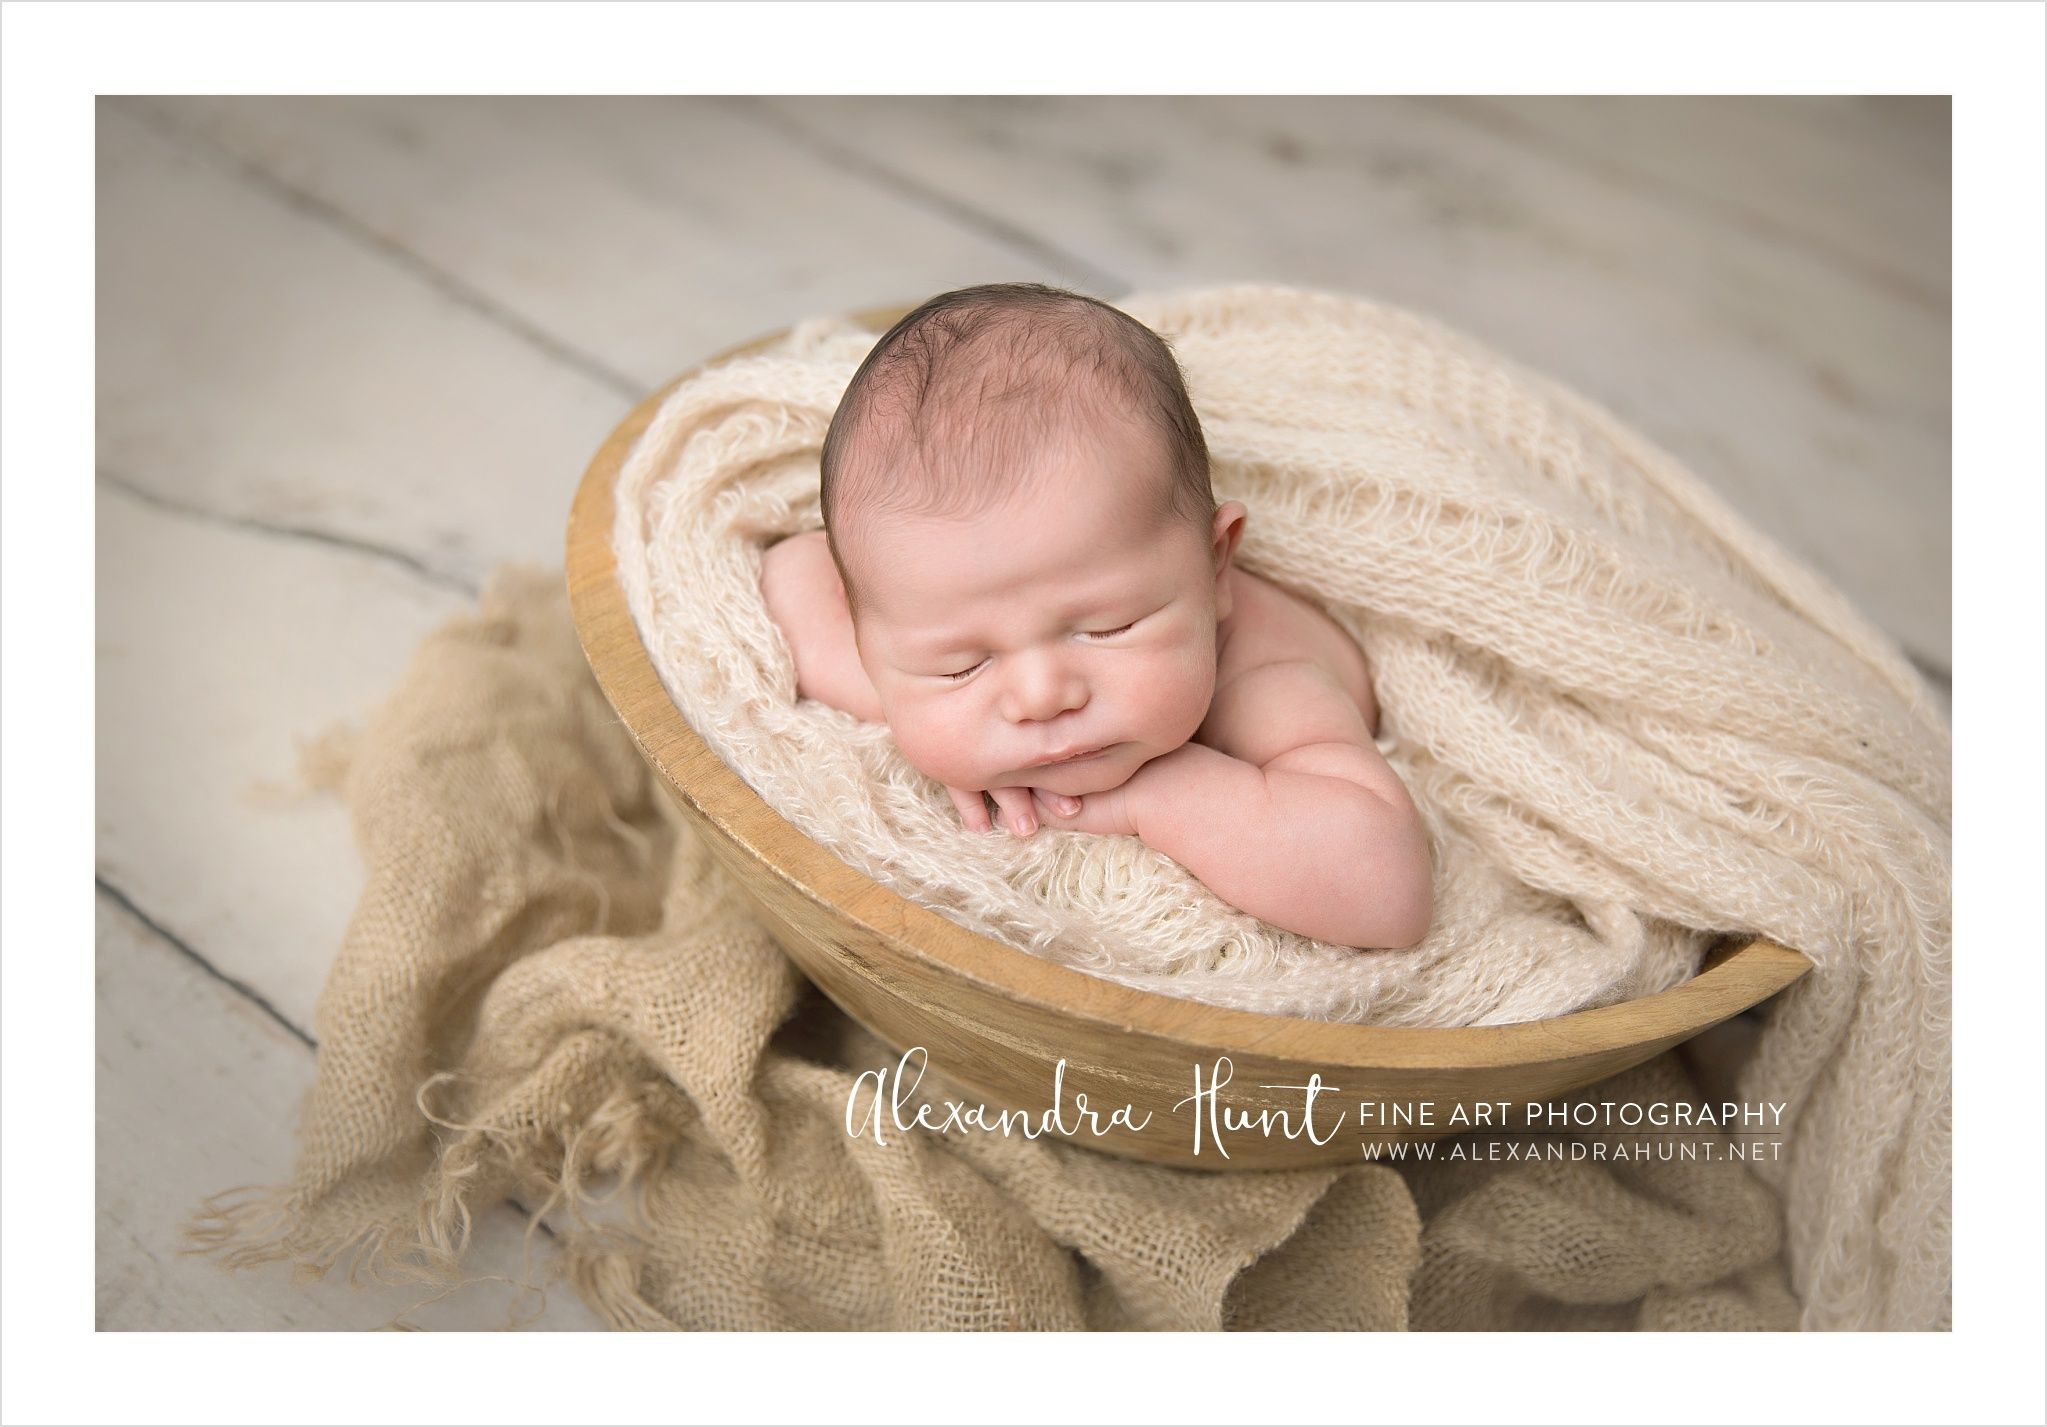 Newborn in wood bowl best vancouver newborn photographer alexandra hunt photography follow us on instagram alexandrahuntphotography